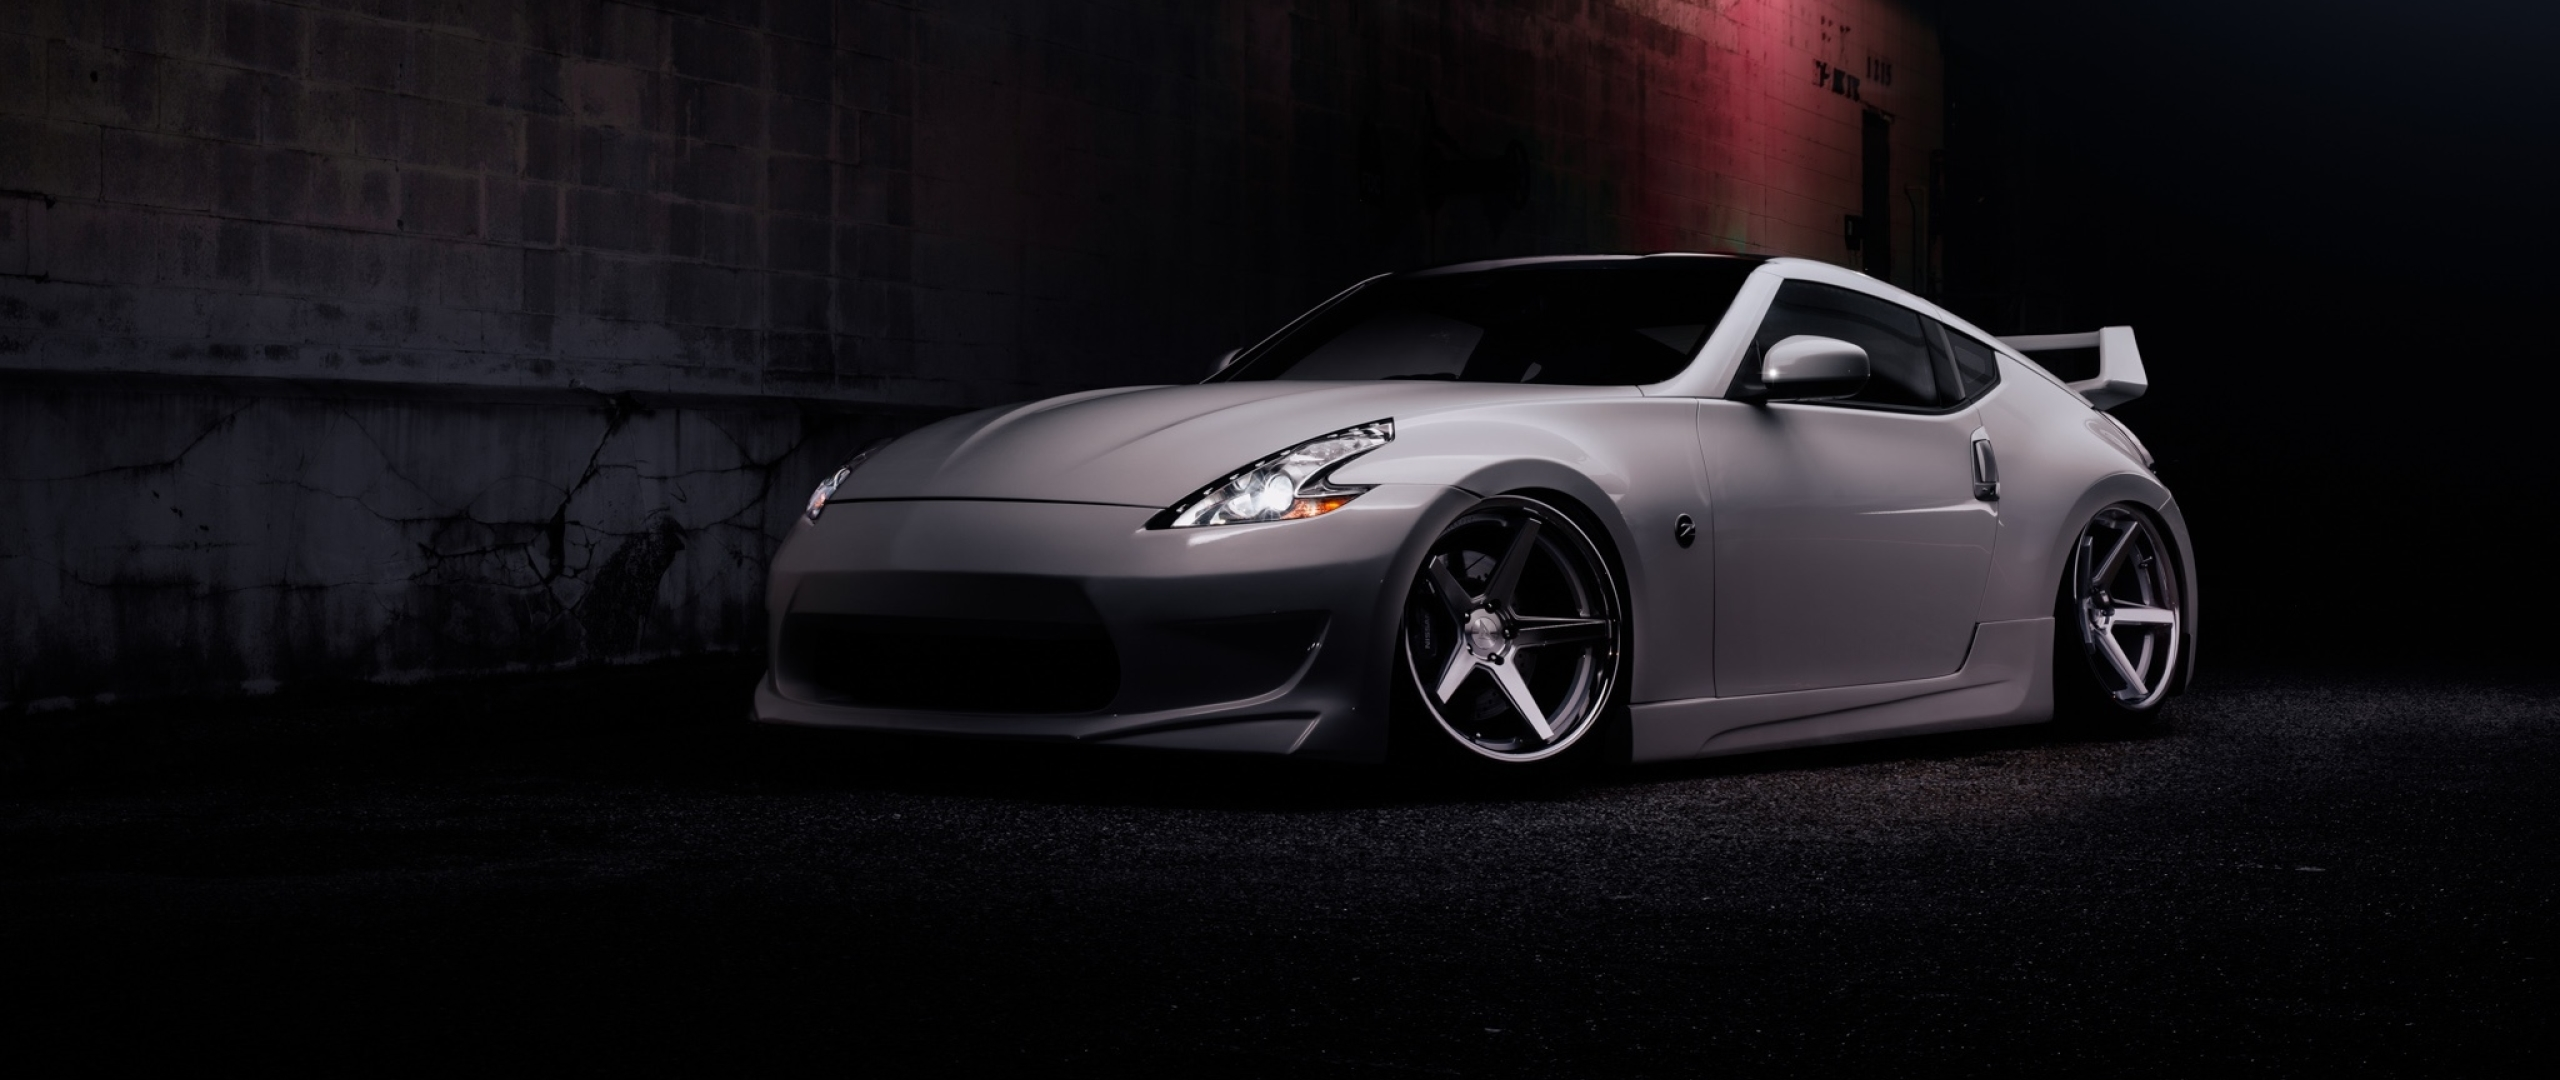 2560x1080 Nissan 370z Sport Car 2560x1080 Resolution Wallpaper Hd Cars 4k Wallpapers Images Photos And Background